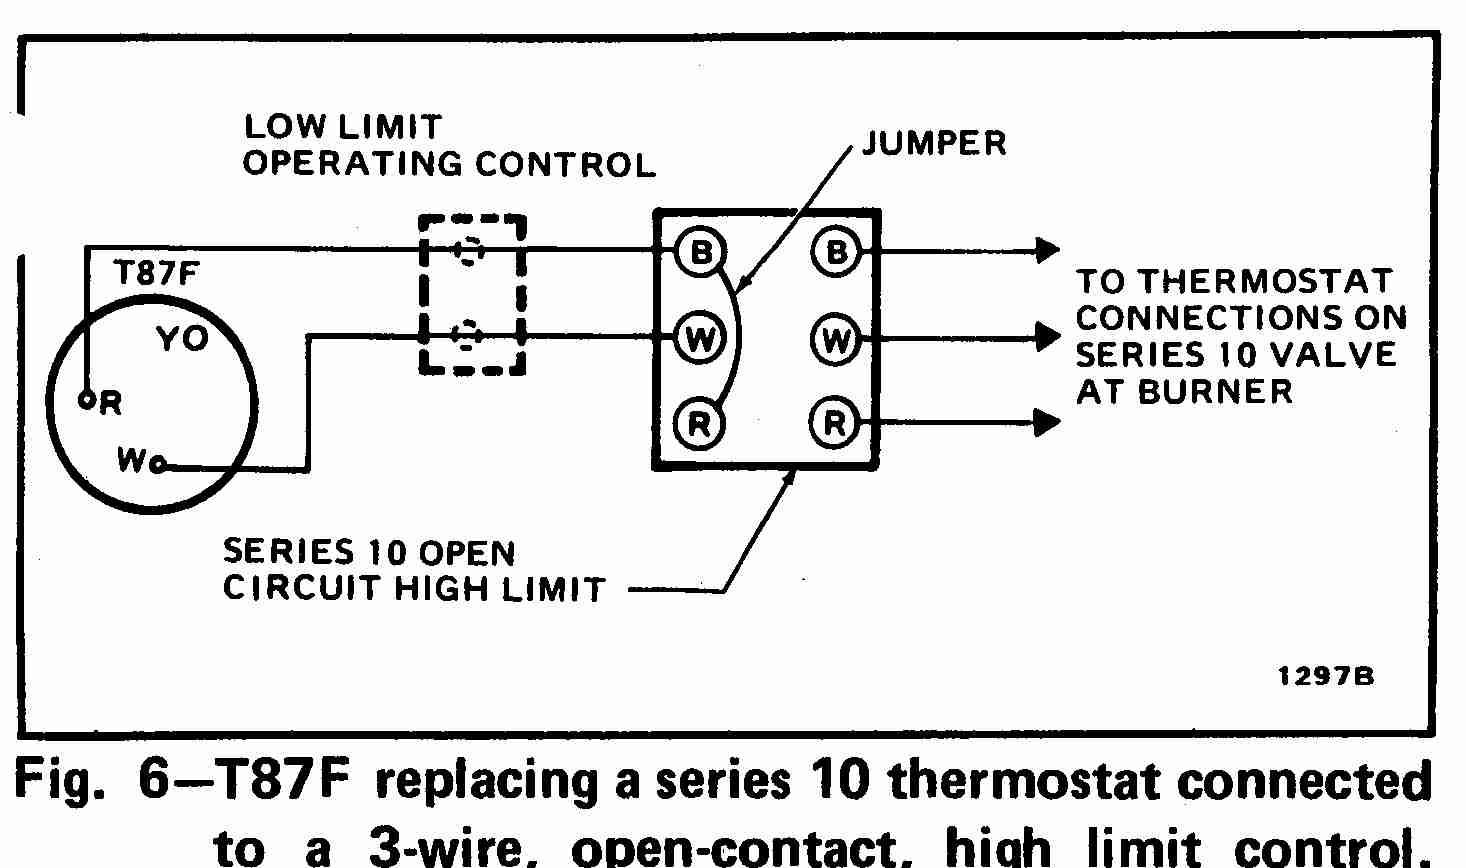 TT_T87F_0002_3WHL_DJF room thermostat wiring diagrams for hvac systems fcu wiring diagram at alyssarenee.co